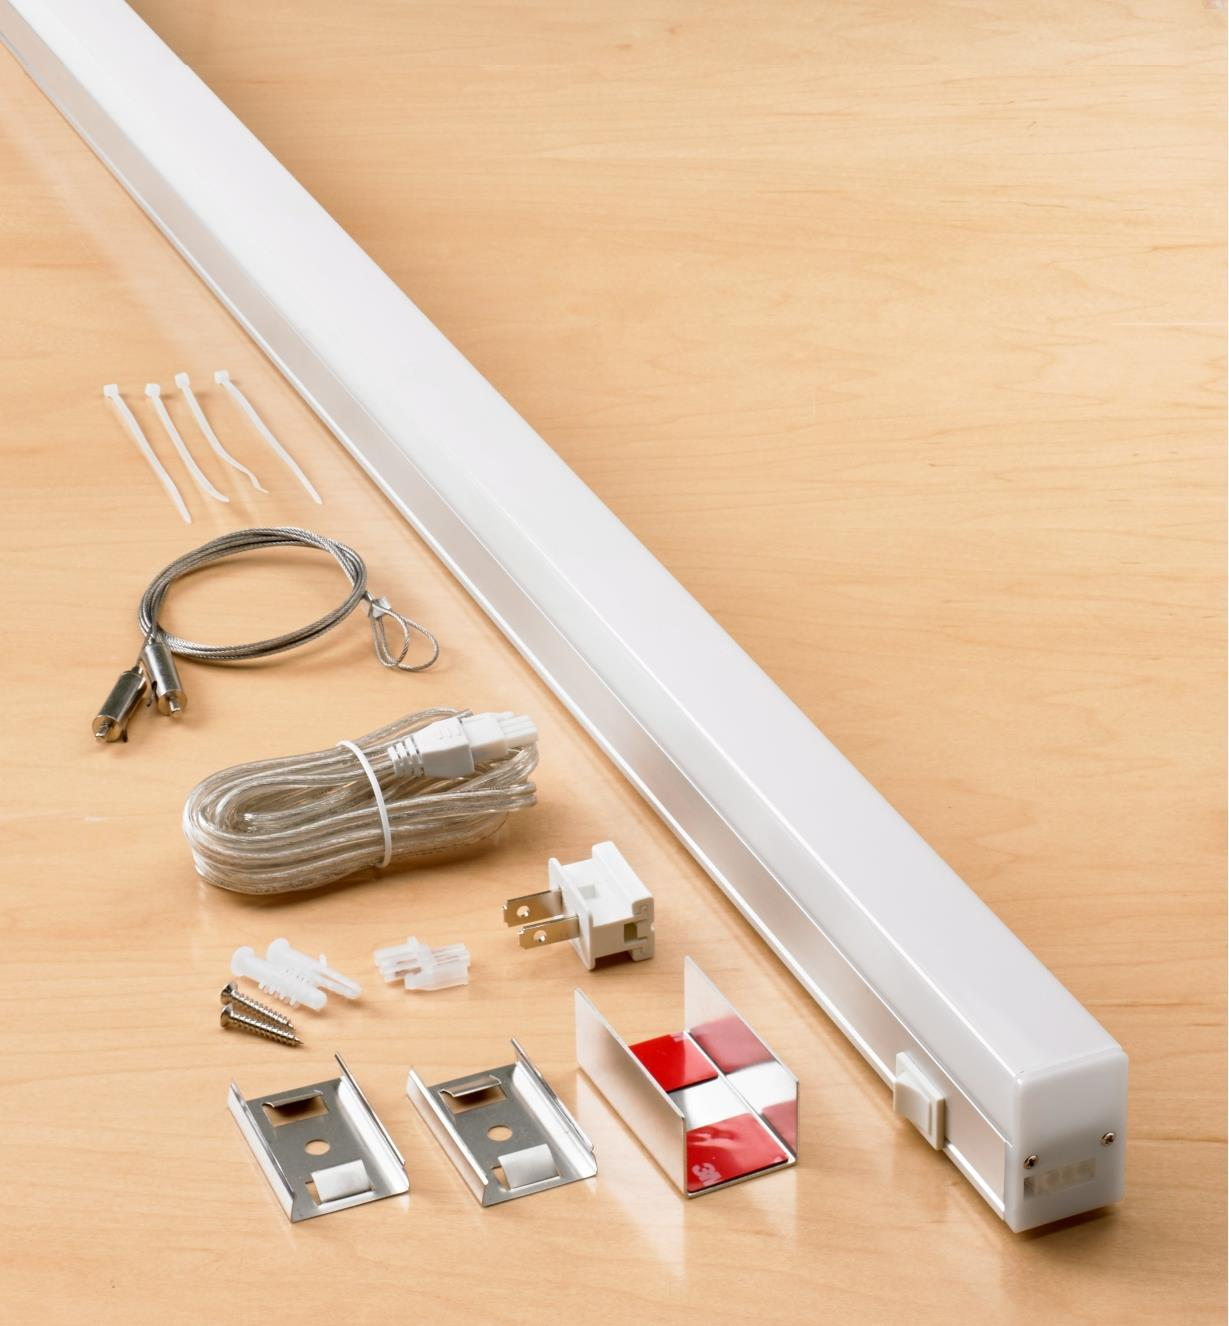 99W7681 - SlimLight LED Fixture, 4'